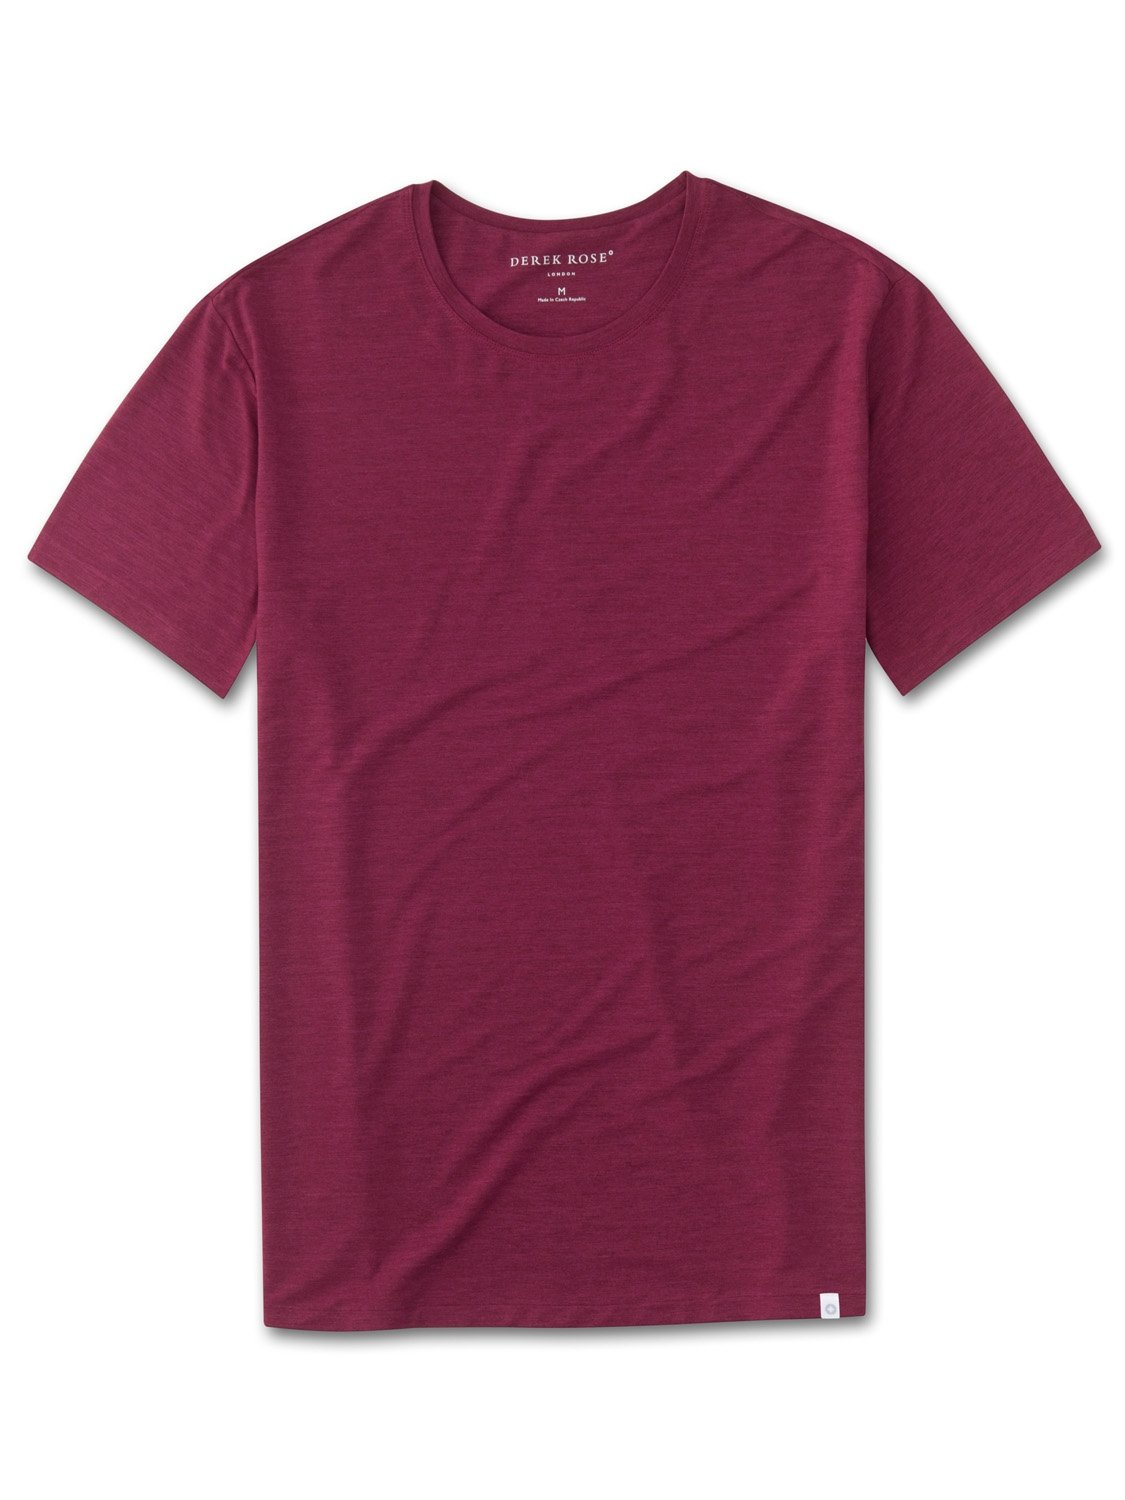 Men's Short Sleeve T-Shirt Ethan Micro Modal Stretch Burgundy